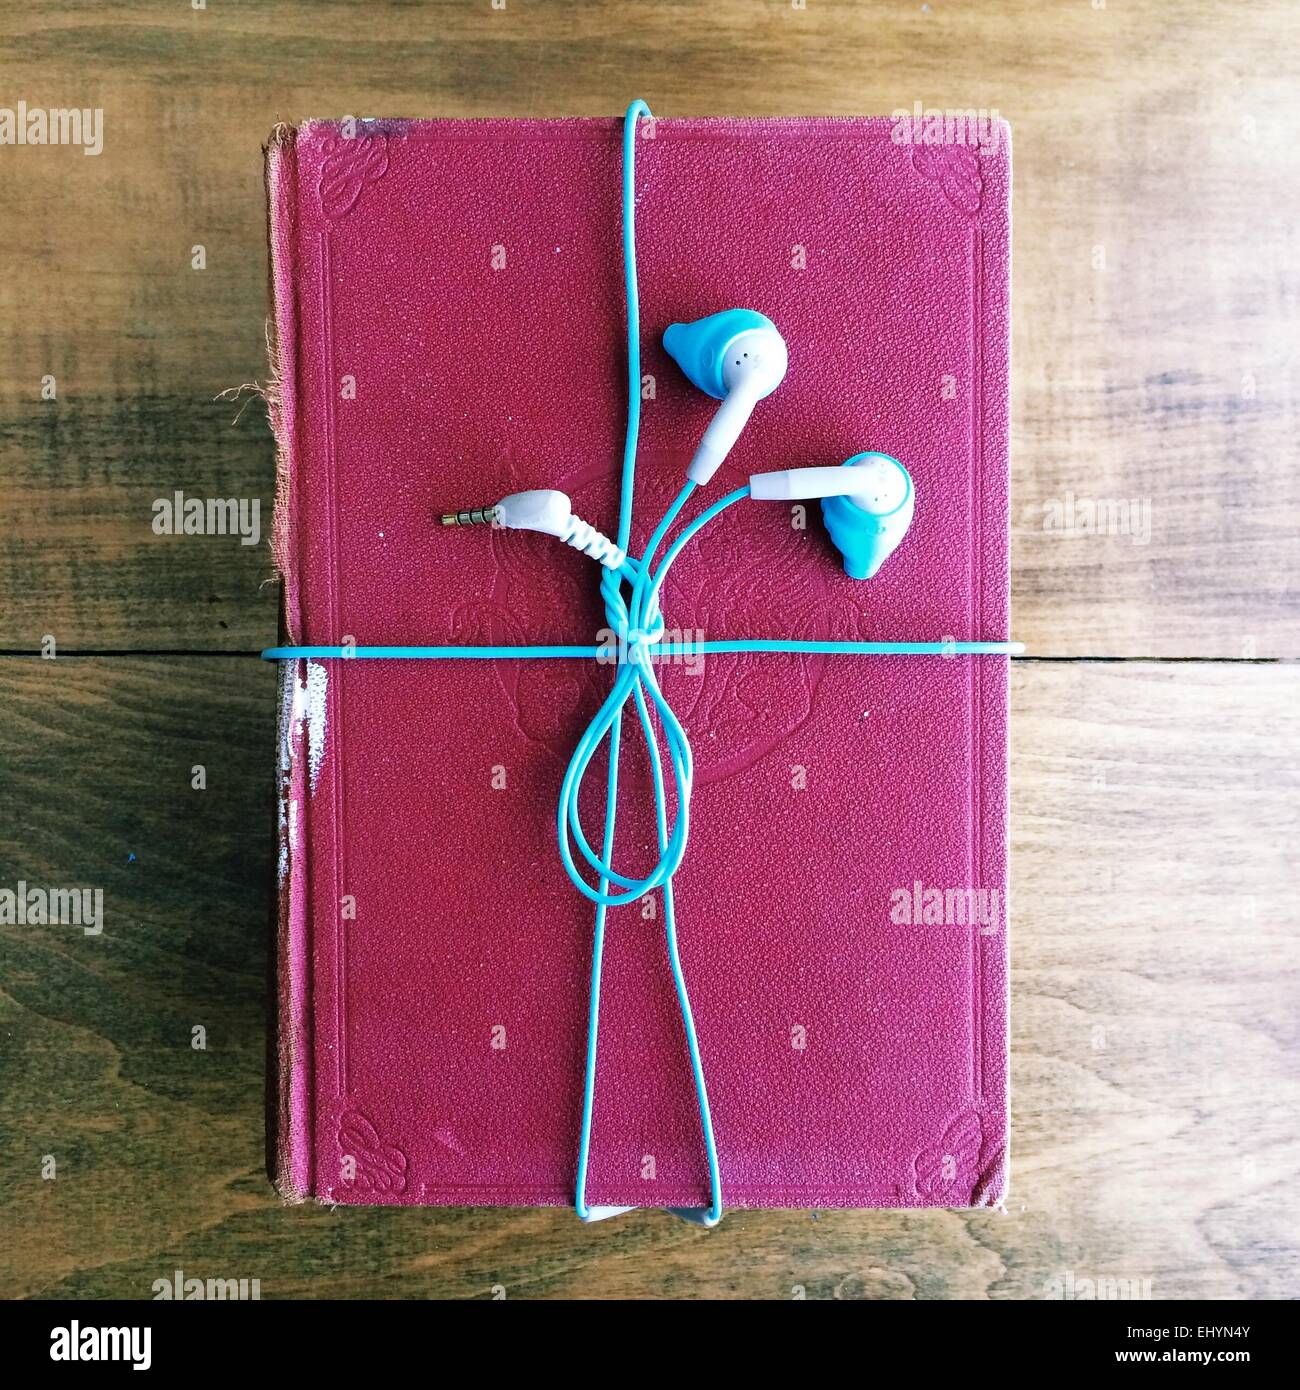 Headphones wrapped around an old book - Stock Image